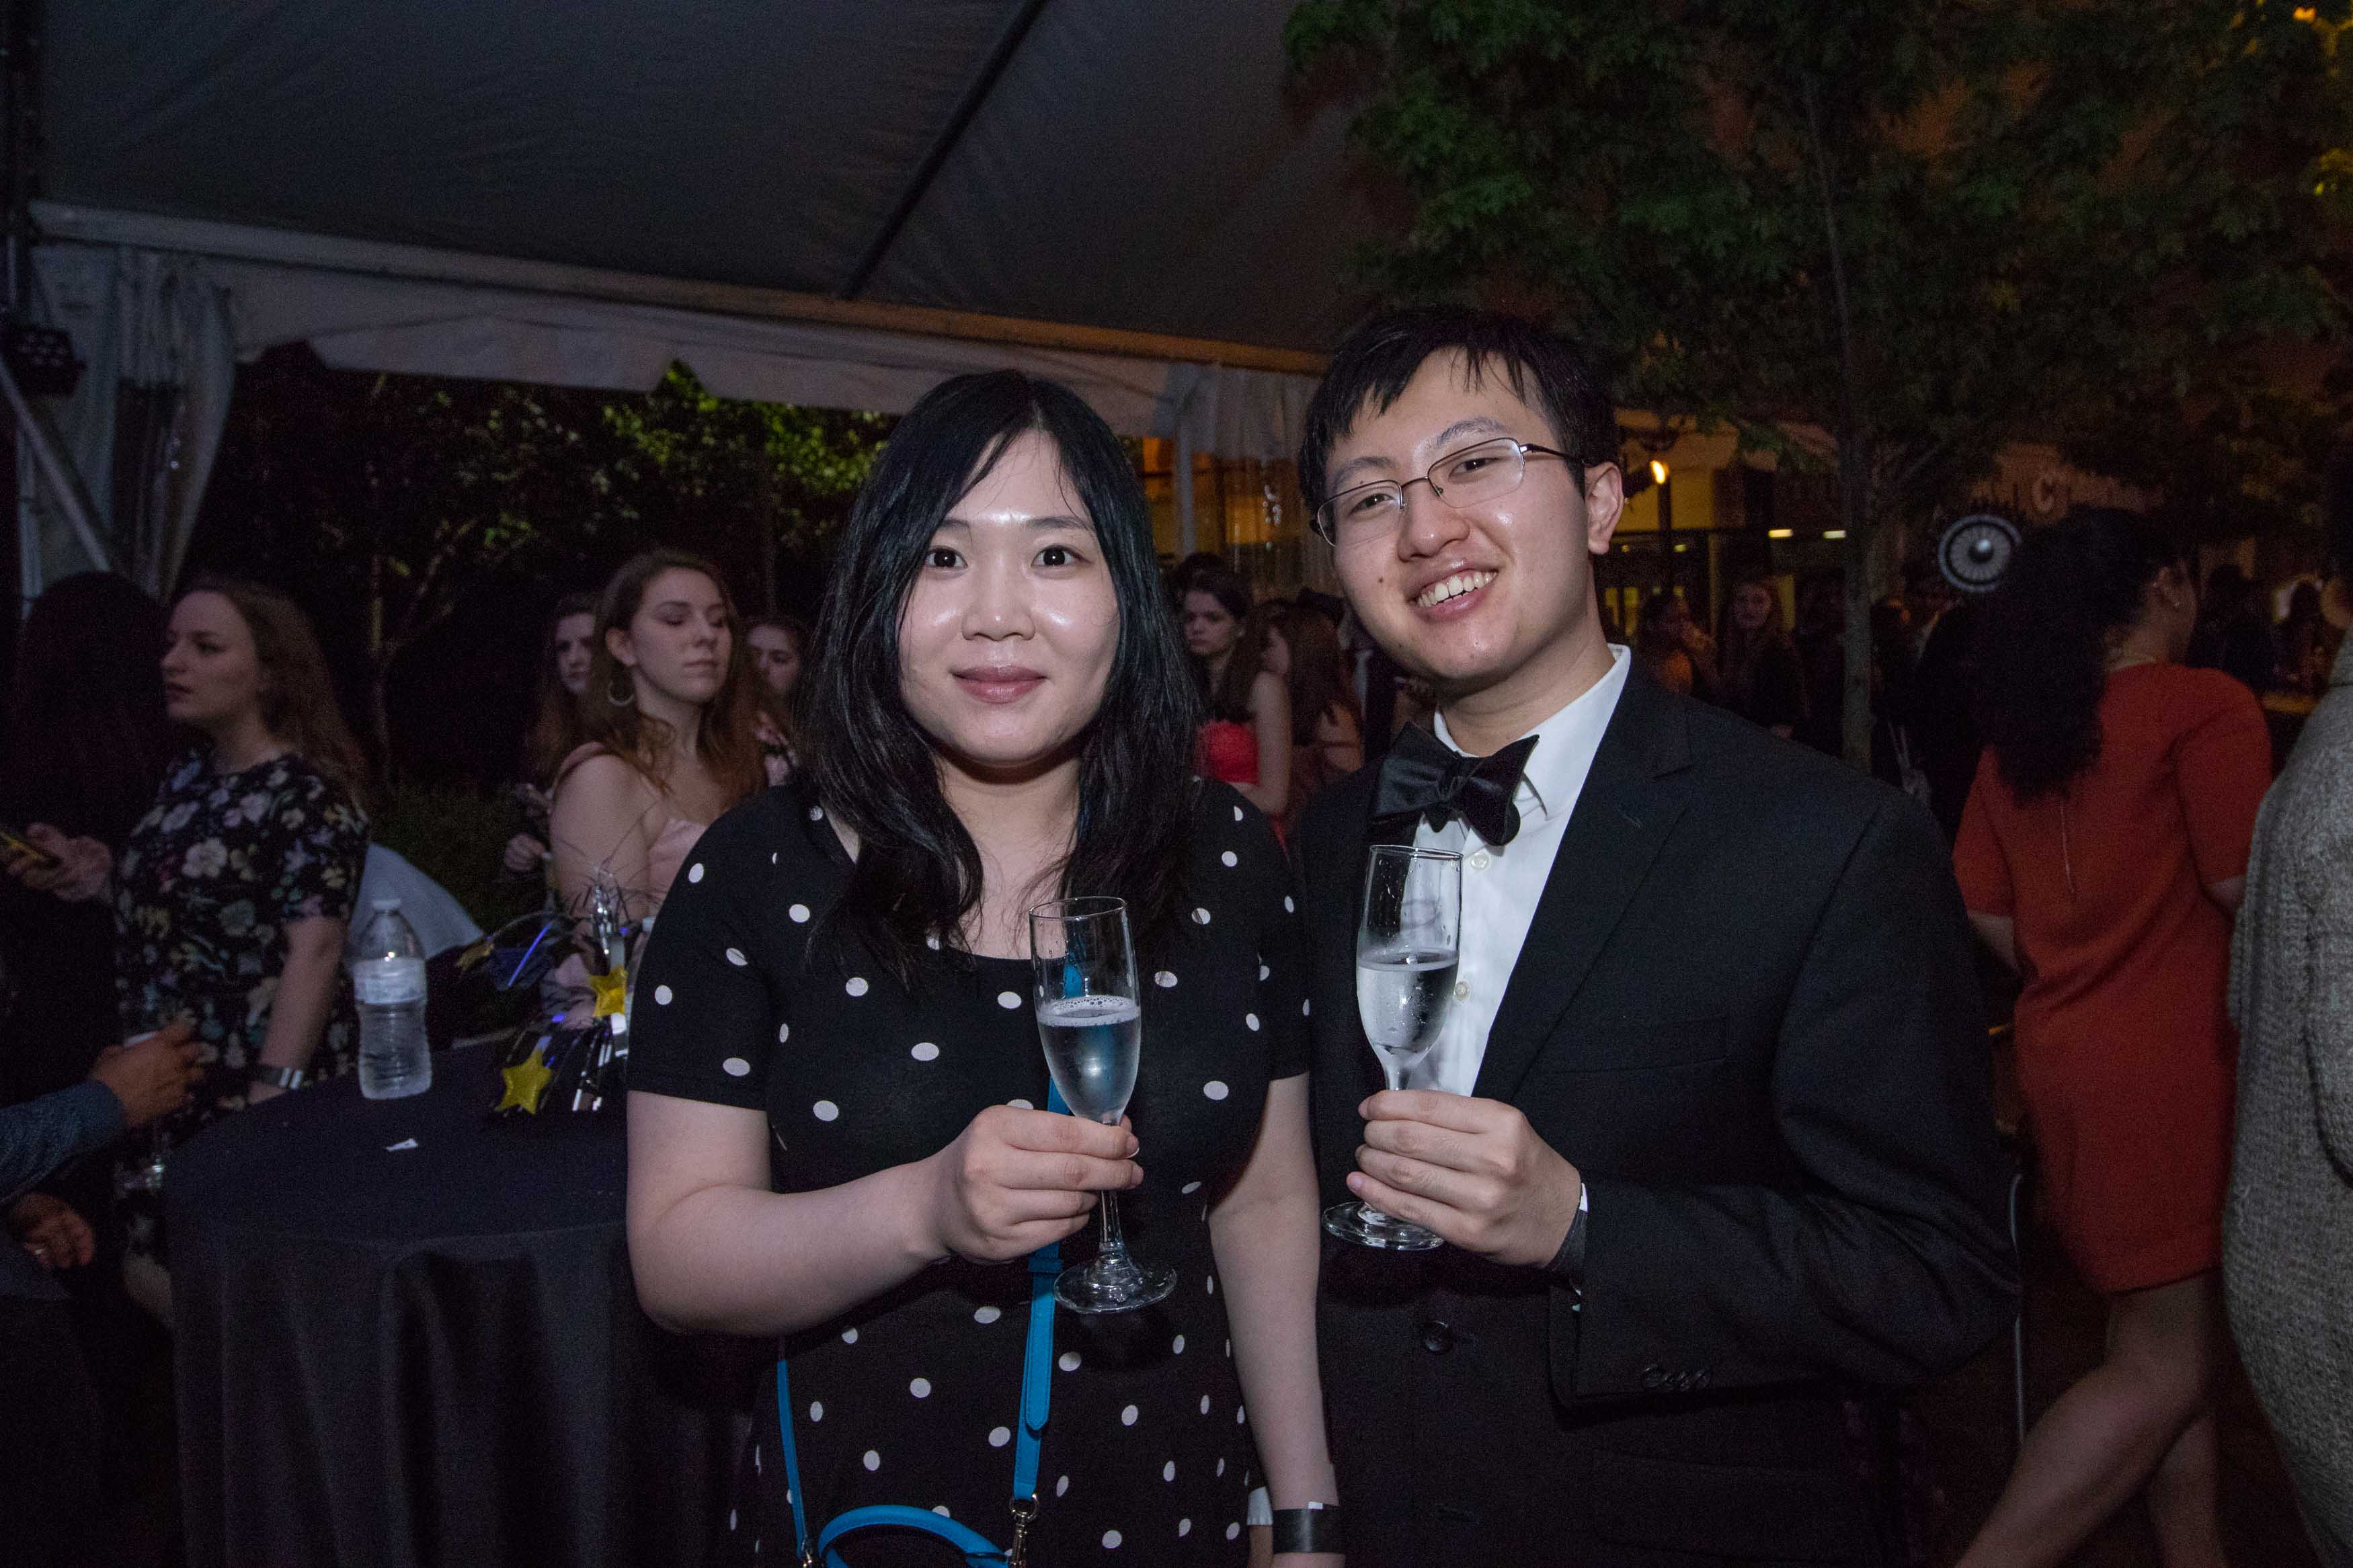 Man in bowtie poses with woman and wine glass